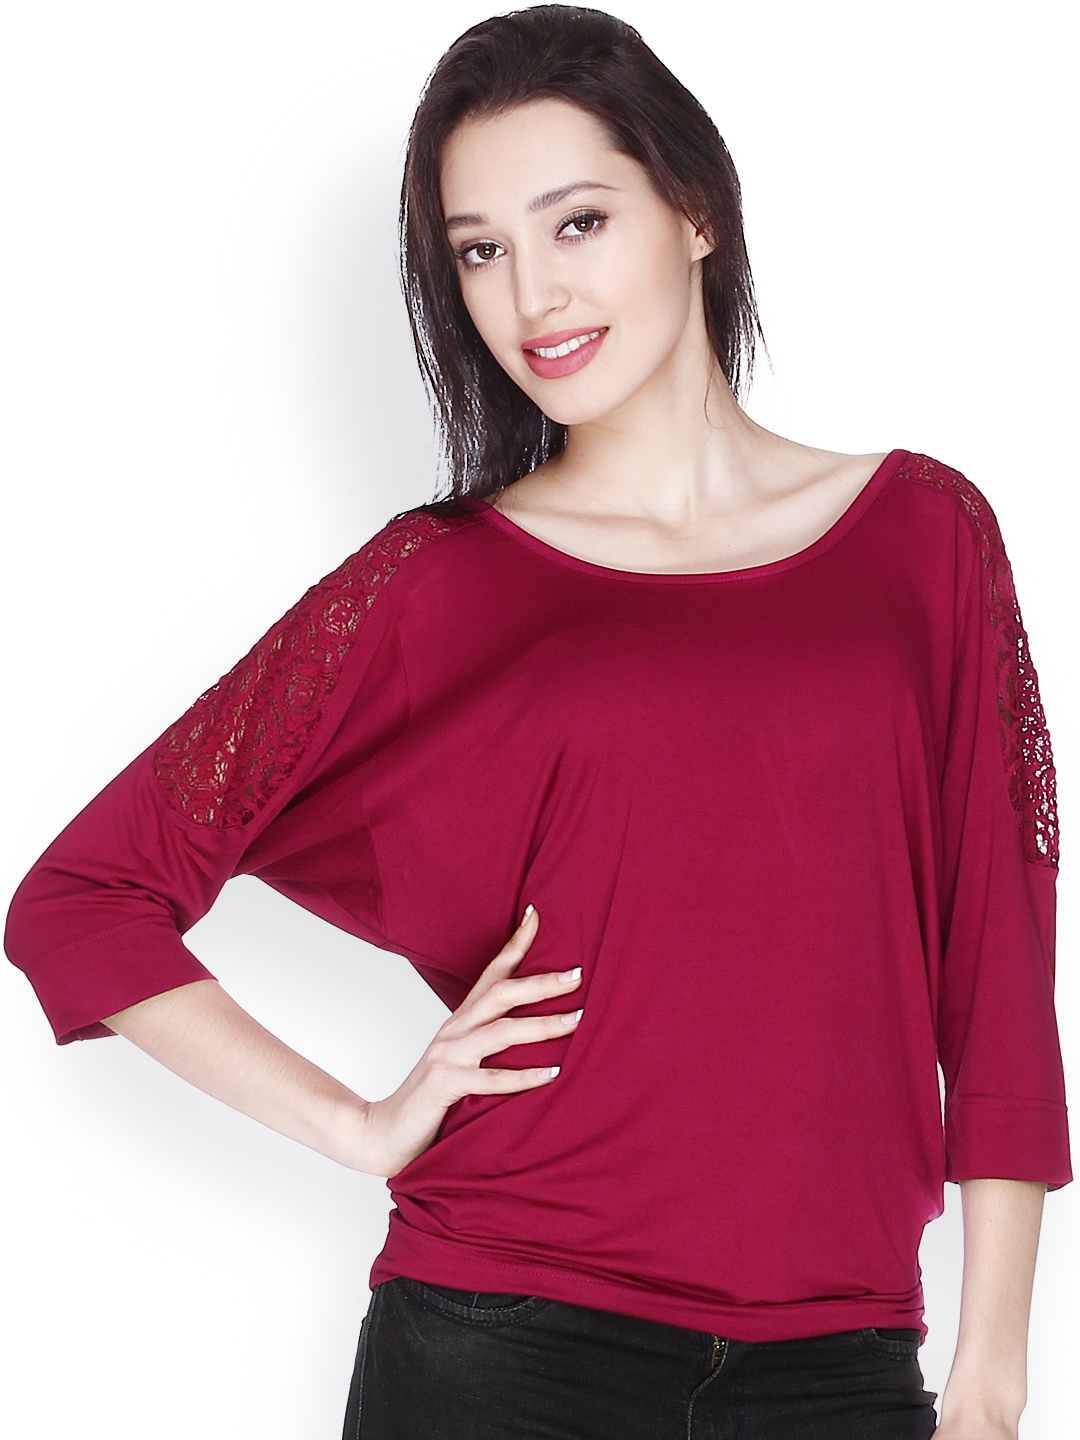 Our exciting range of women's casual and going out tops feature pretty and practical wardrobe staples such as ladies' vests and camis, stylish crop tops, colourful tunics, gorgeous party numbers and chic shirts. Workwear. Nail your I-mean-business look with tops that work for the office and after.